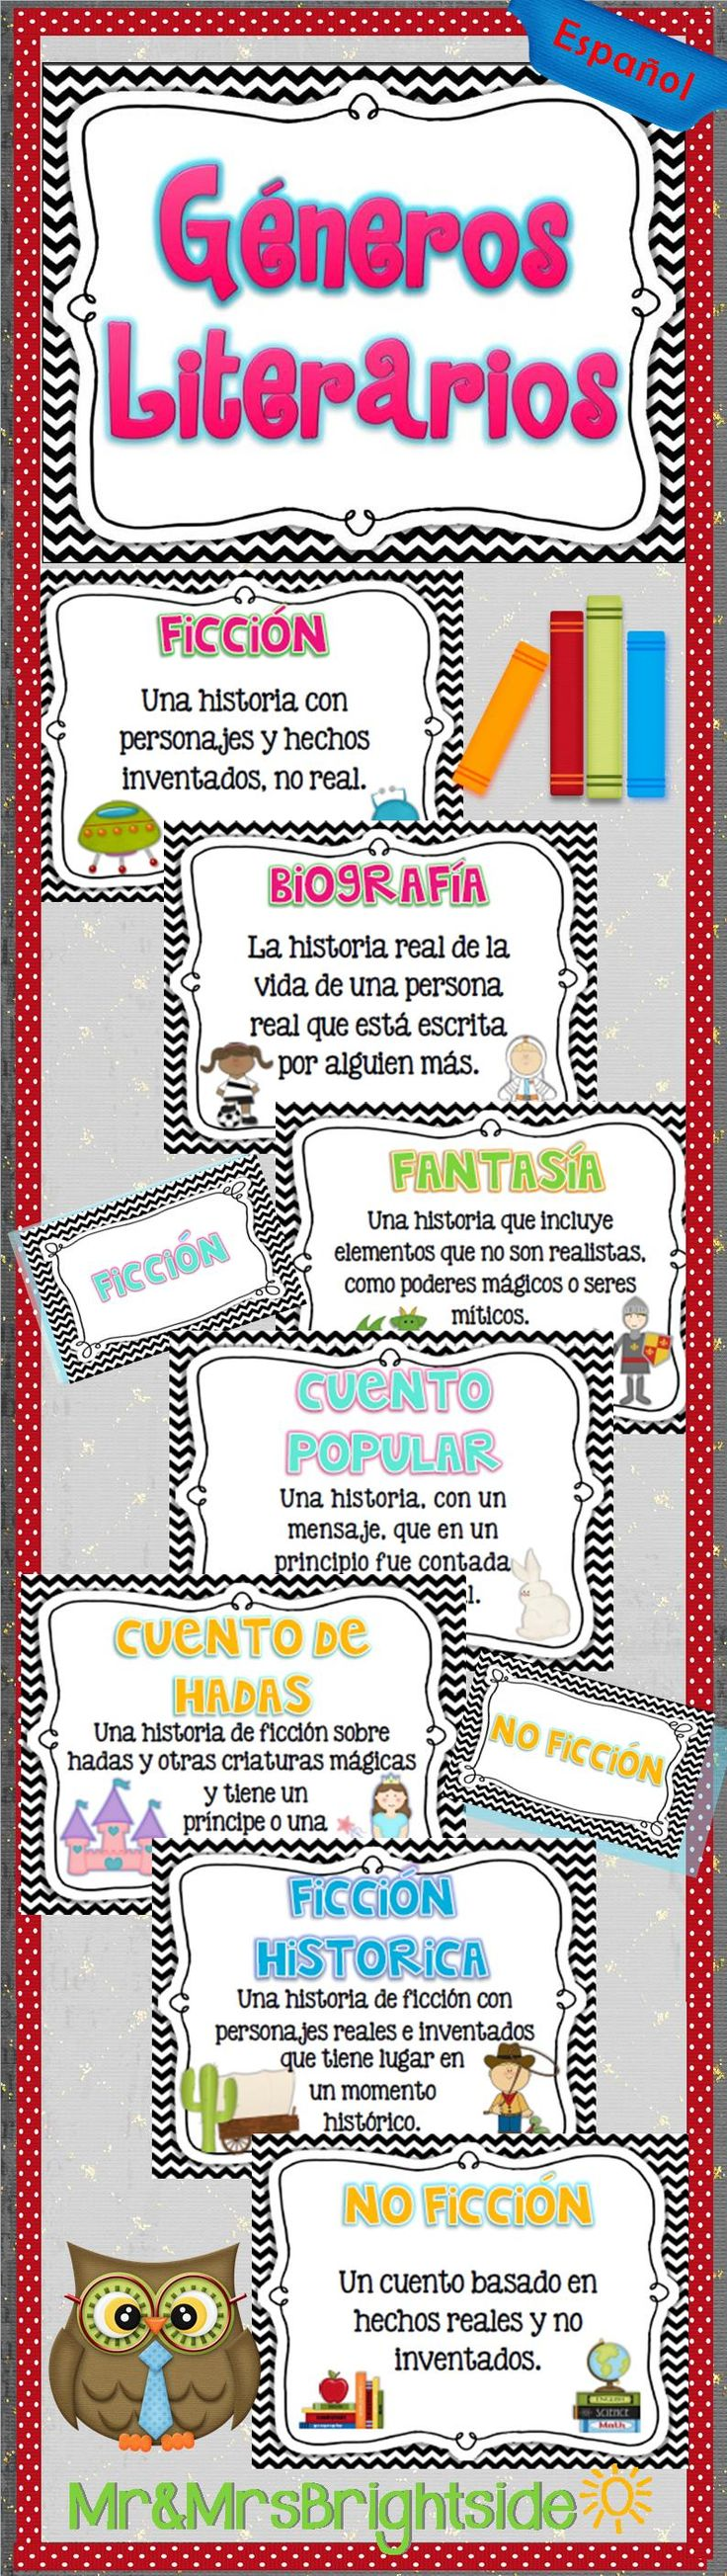 Generos Literarios - reading genres in Spanish posters. Includes : no ficcion, cuento popular, autobiografia, biografia, ficcion historica, poesia, ciencia ficcion, fantasia, ficcion, misterio, cuento de hadas, mito, y leyenda. For bilingual and dual language classrooms.